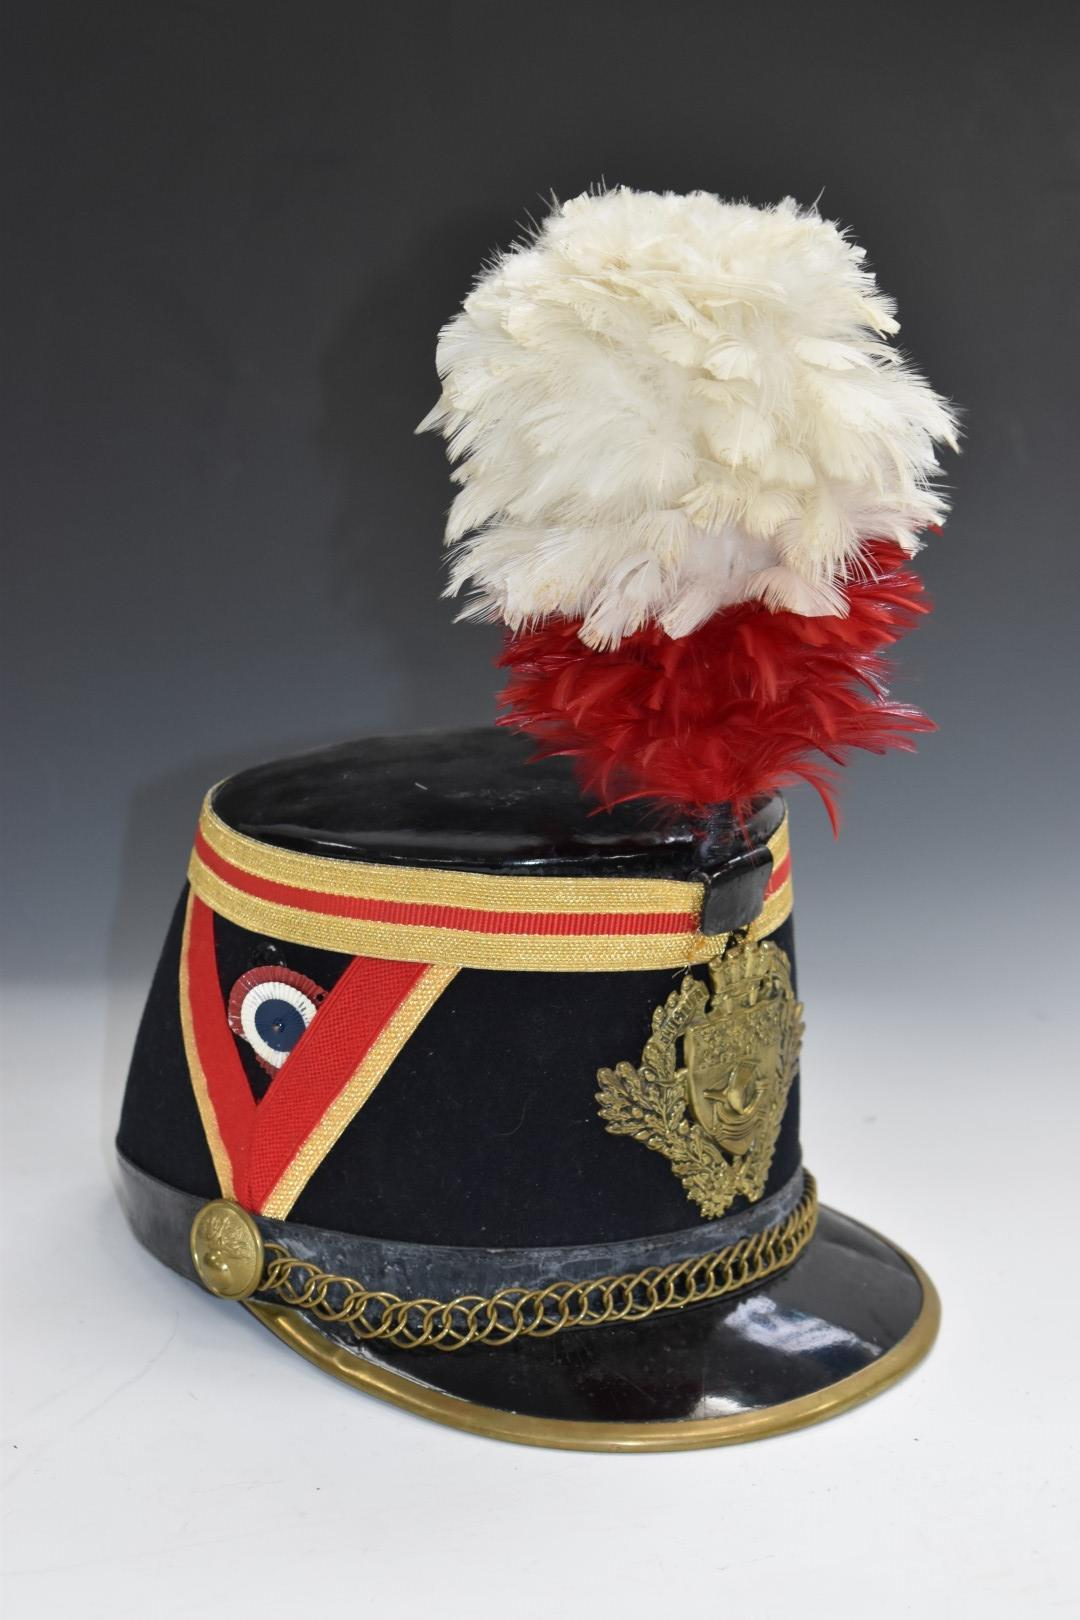 French fireman's parade hat with Paris coat of arms to front and feather plume above - Image 2 of 4